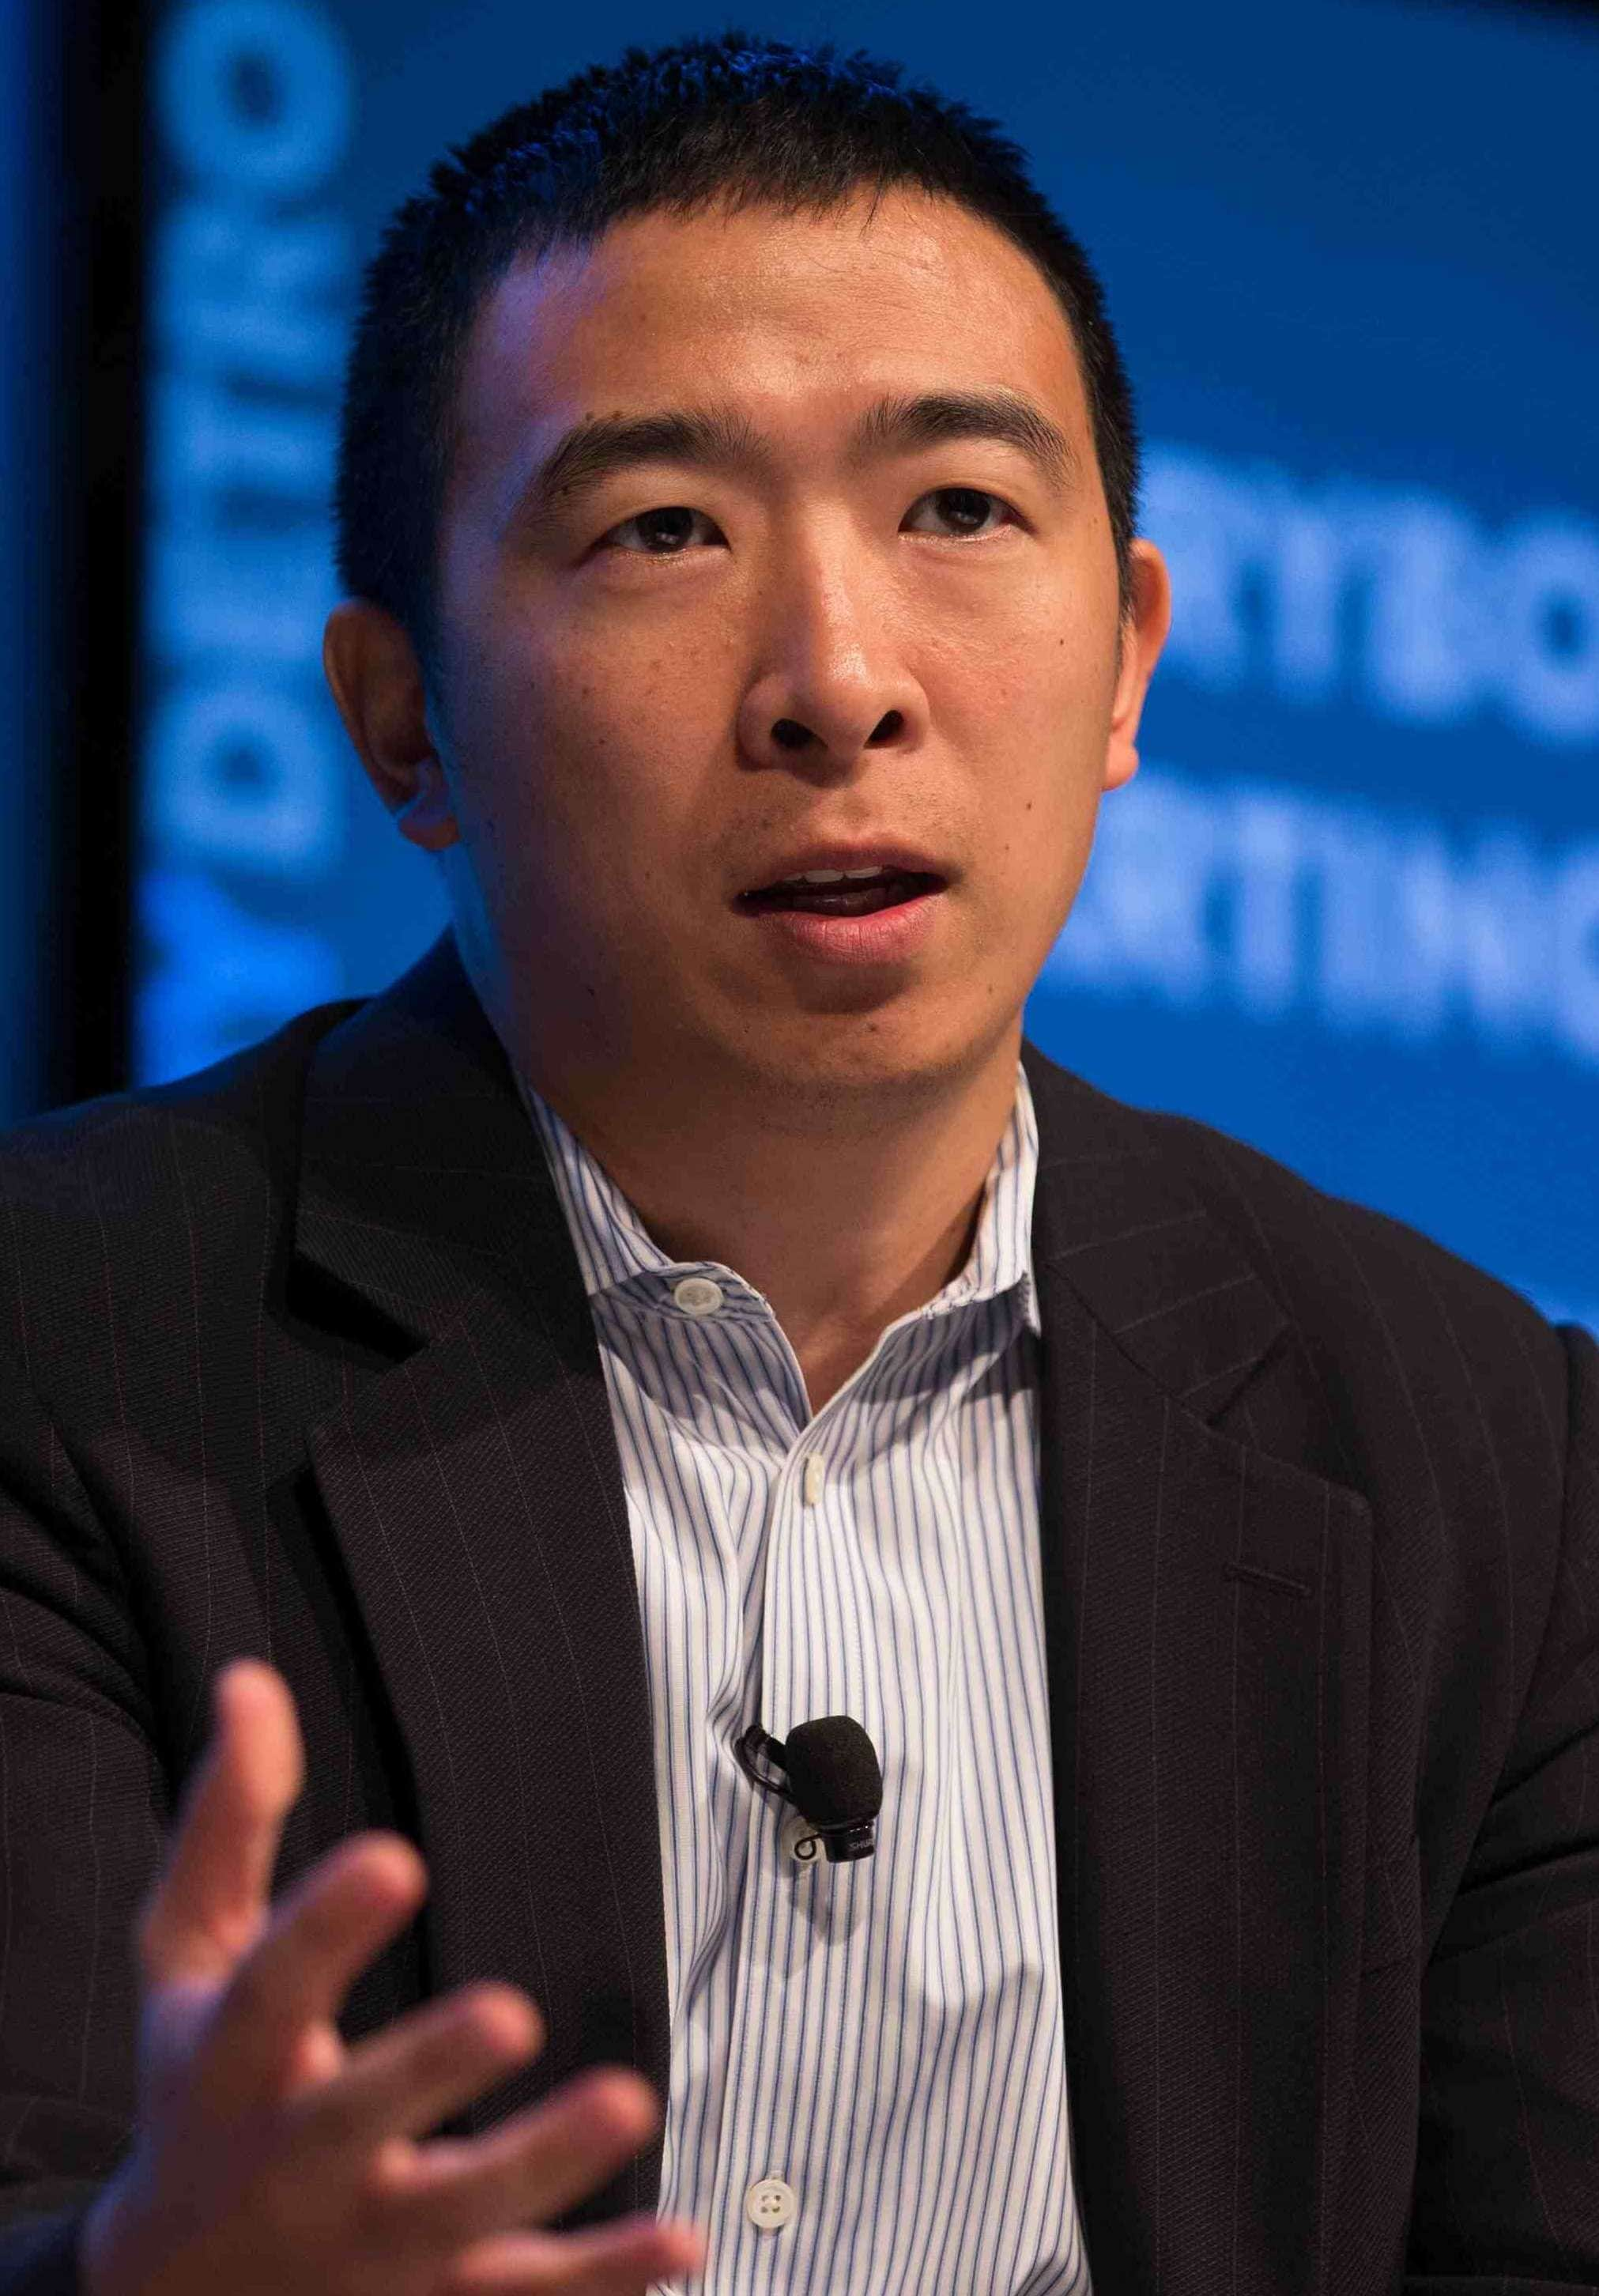 Andrew Yang discussing urban entrepreneurship at the Techonomy Conference 2015 in Detroit, MI on September 15, 2015. (Image Credit: Asa Mathat/Wikimedia Commons)